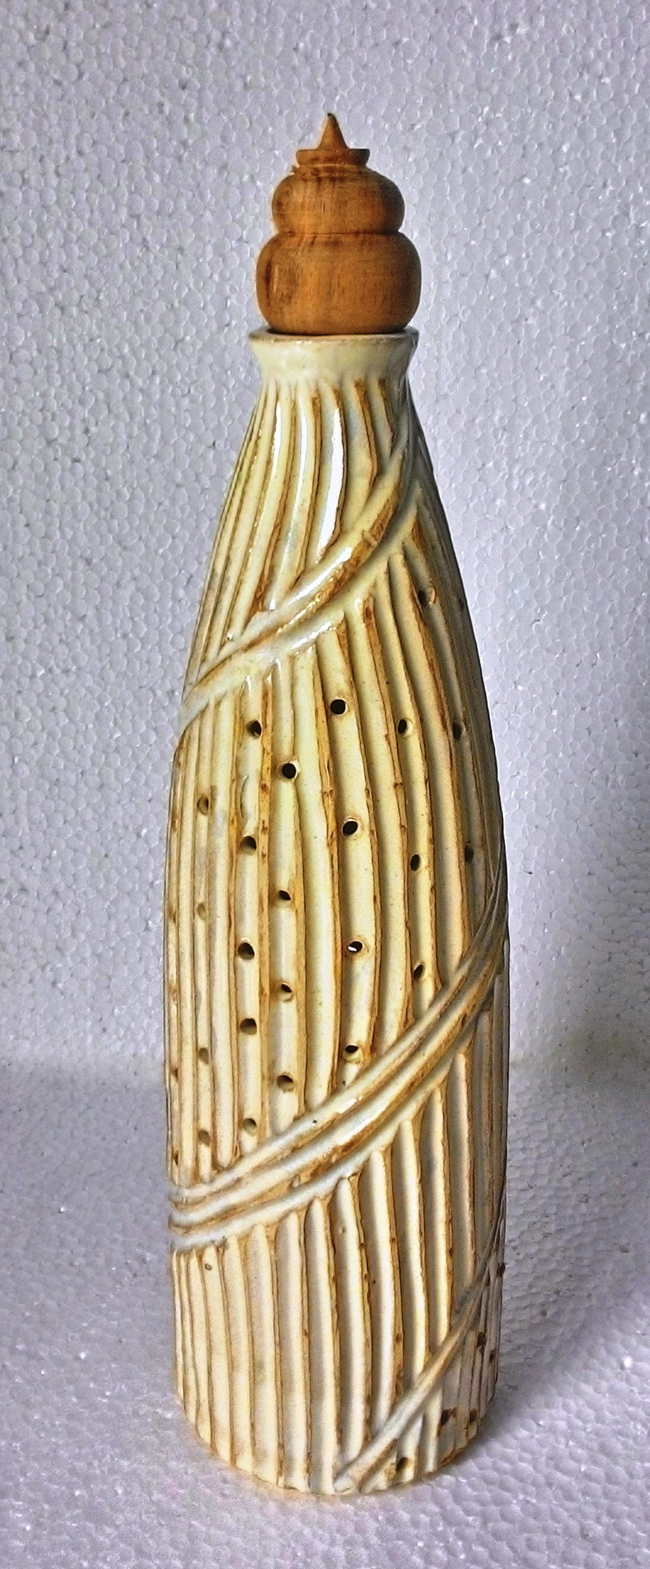 round bottle incense holder Artifact By Wind Glaze